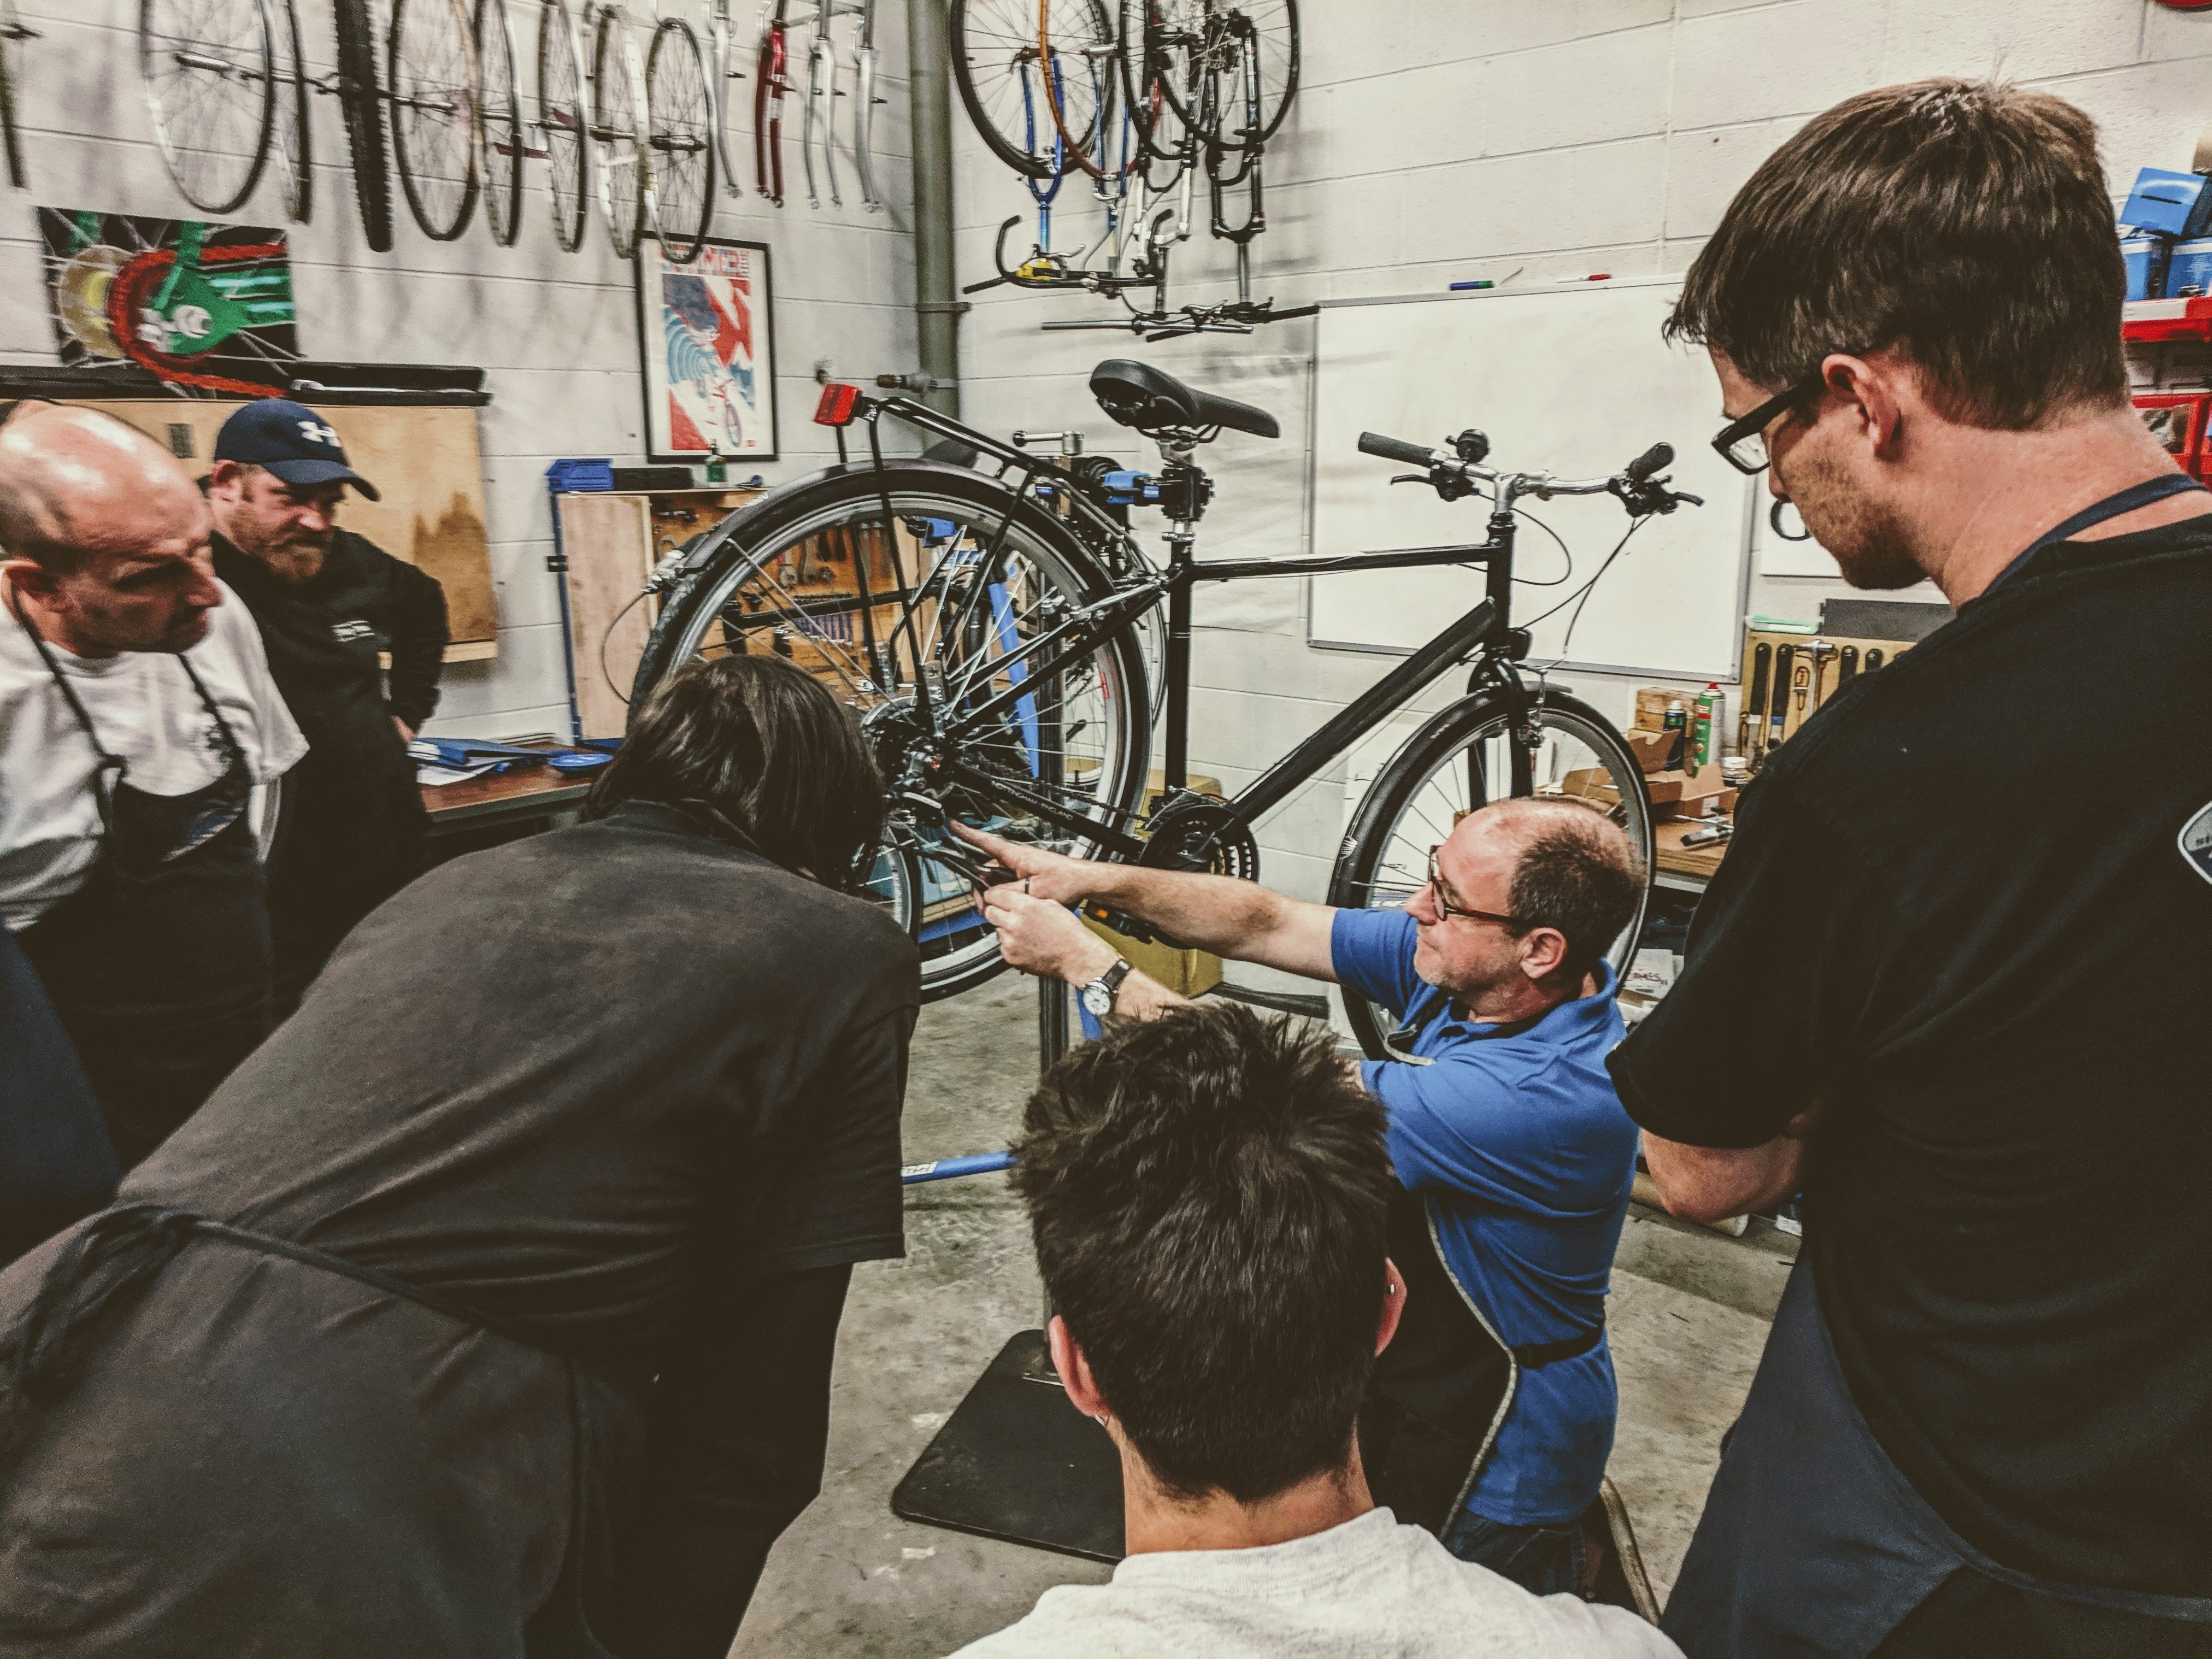 One-day cycle maintenance for 'Improvers', Saturday 2 March, Horfield